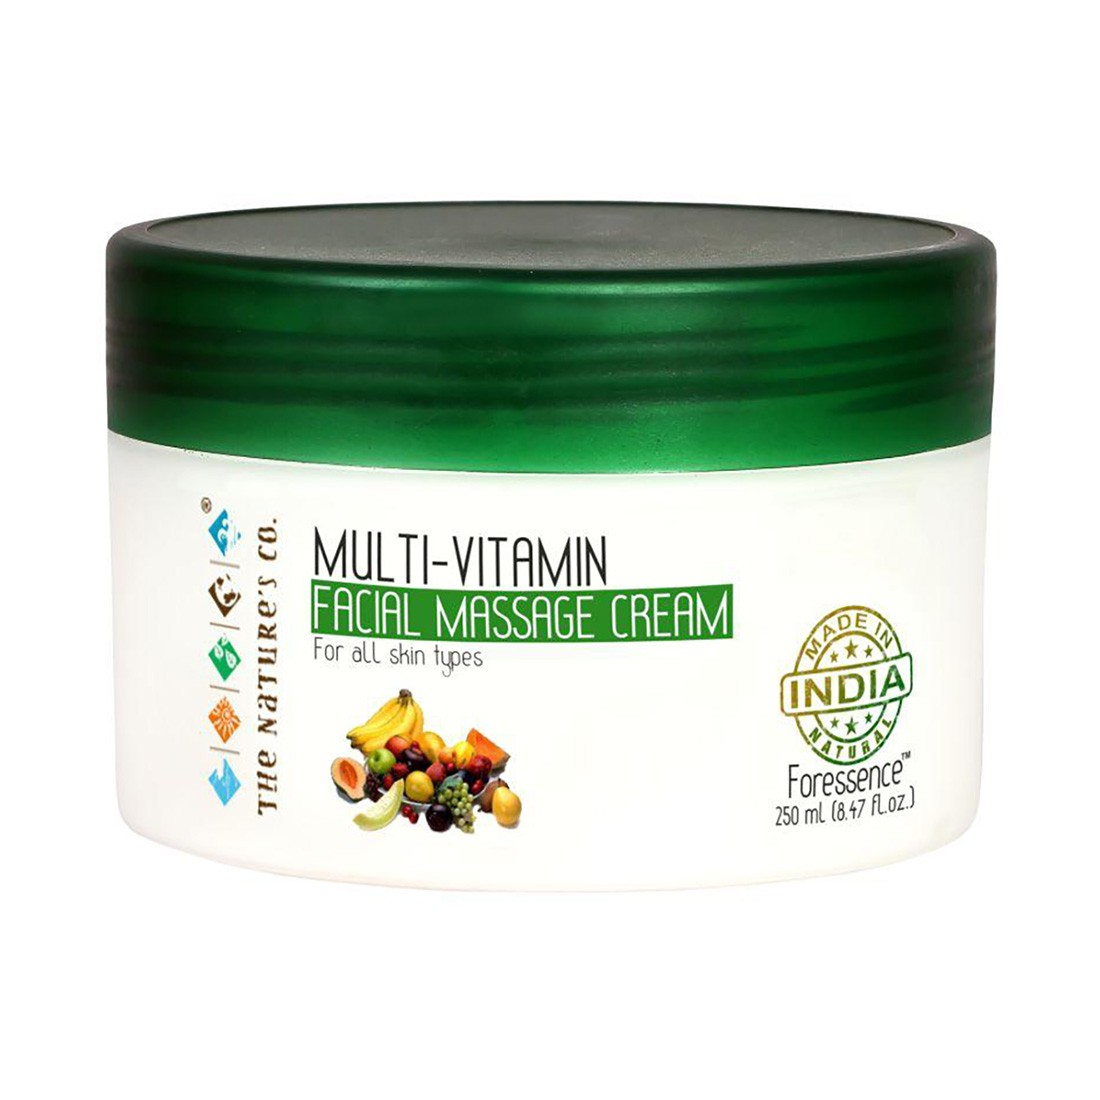 Multi-Vitamin Facial Massage Cream